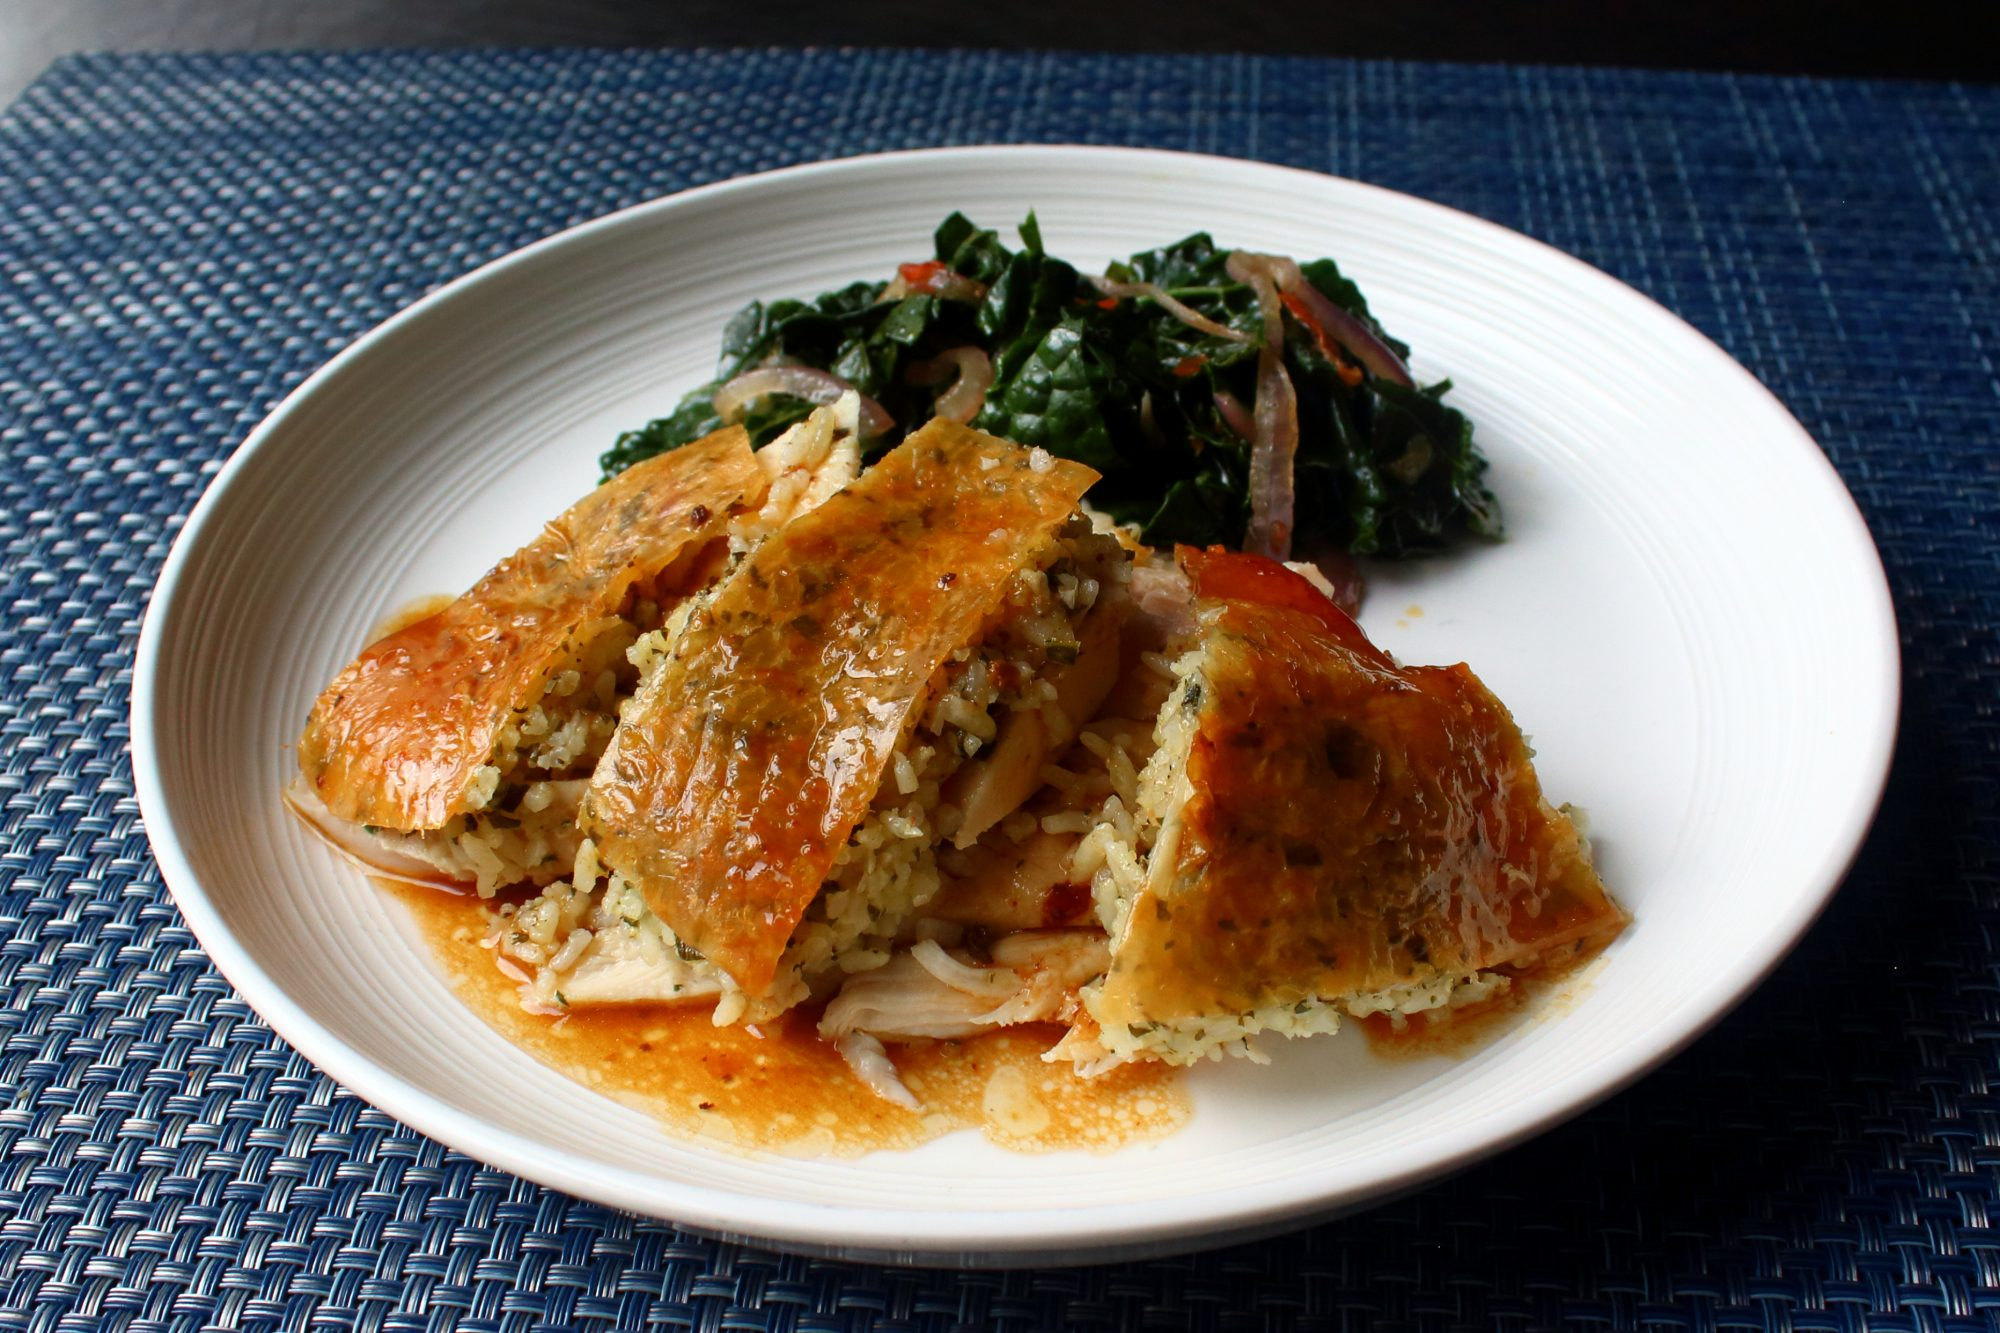 a chicken breast with rice stuffed under the crispy brown skin on a white plate , with wilted Swiss chard in the background